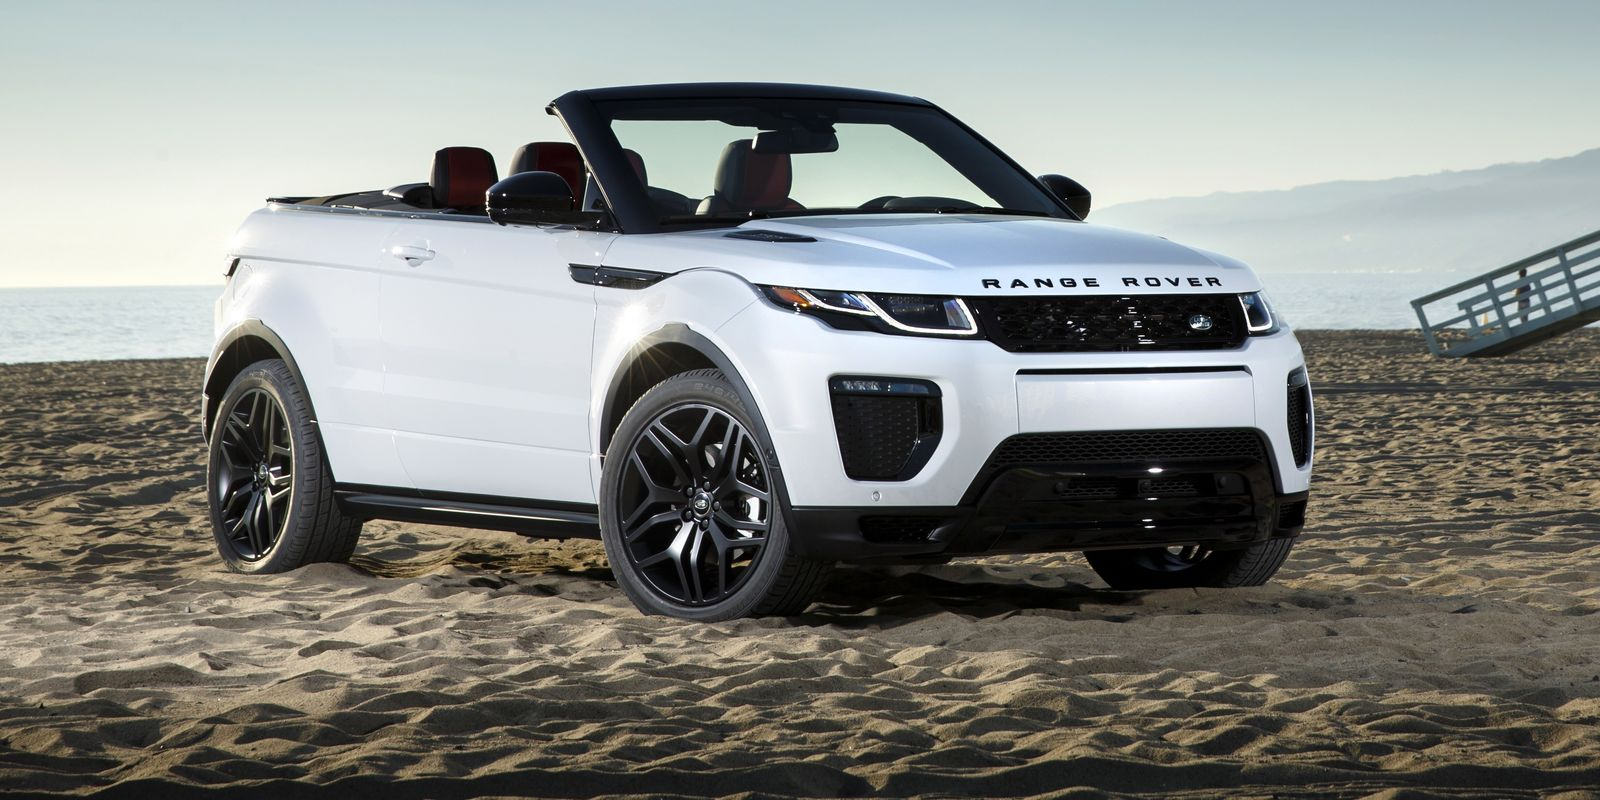 land rover range rover evoque convertible review carwow. Black Bedroom Furniture Sets. Home Design Ideas